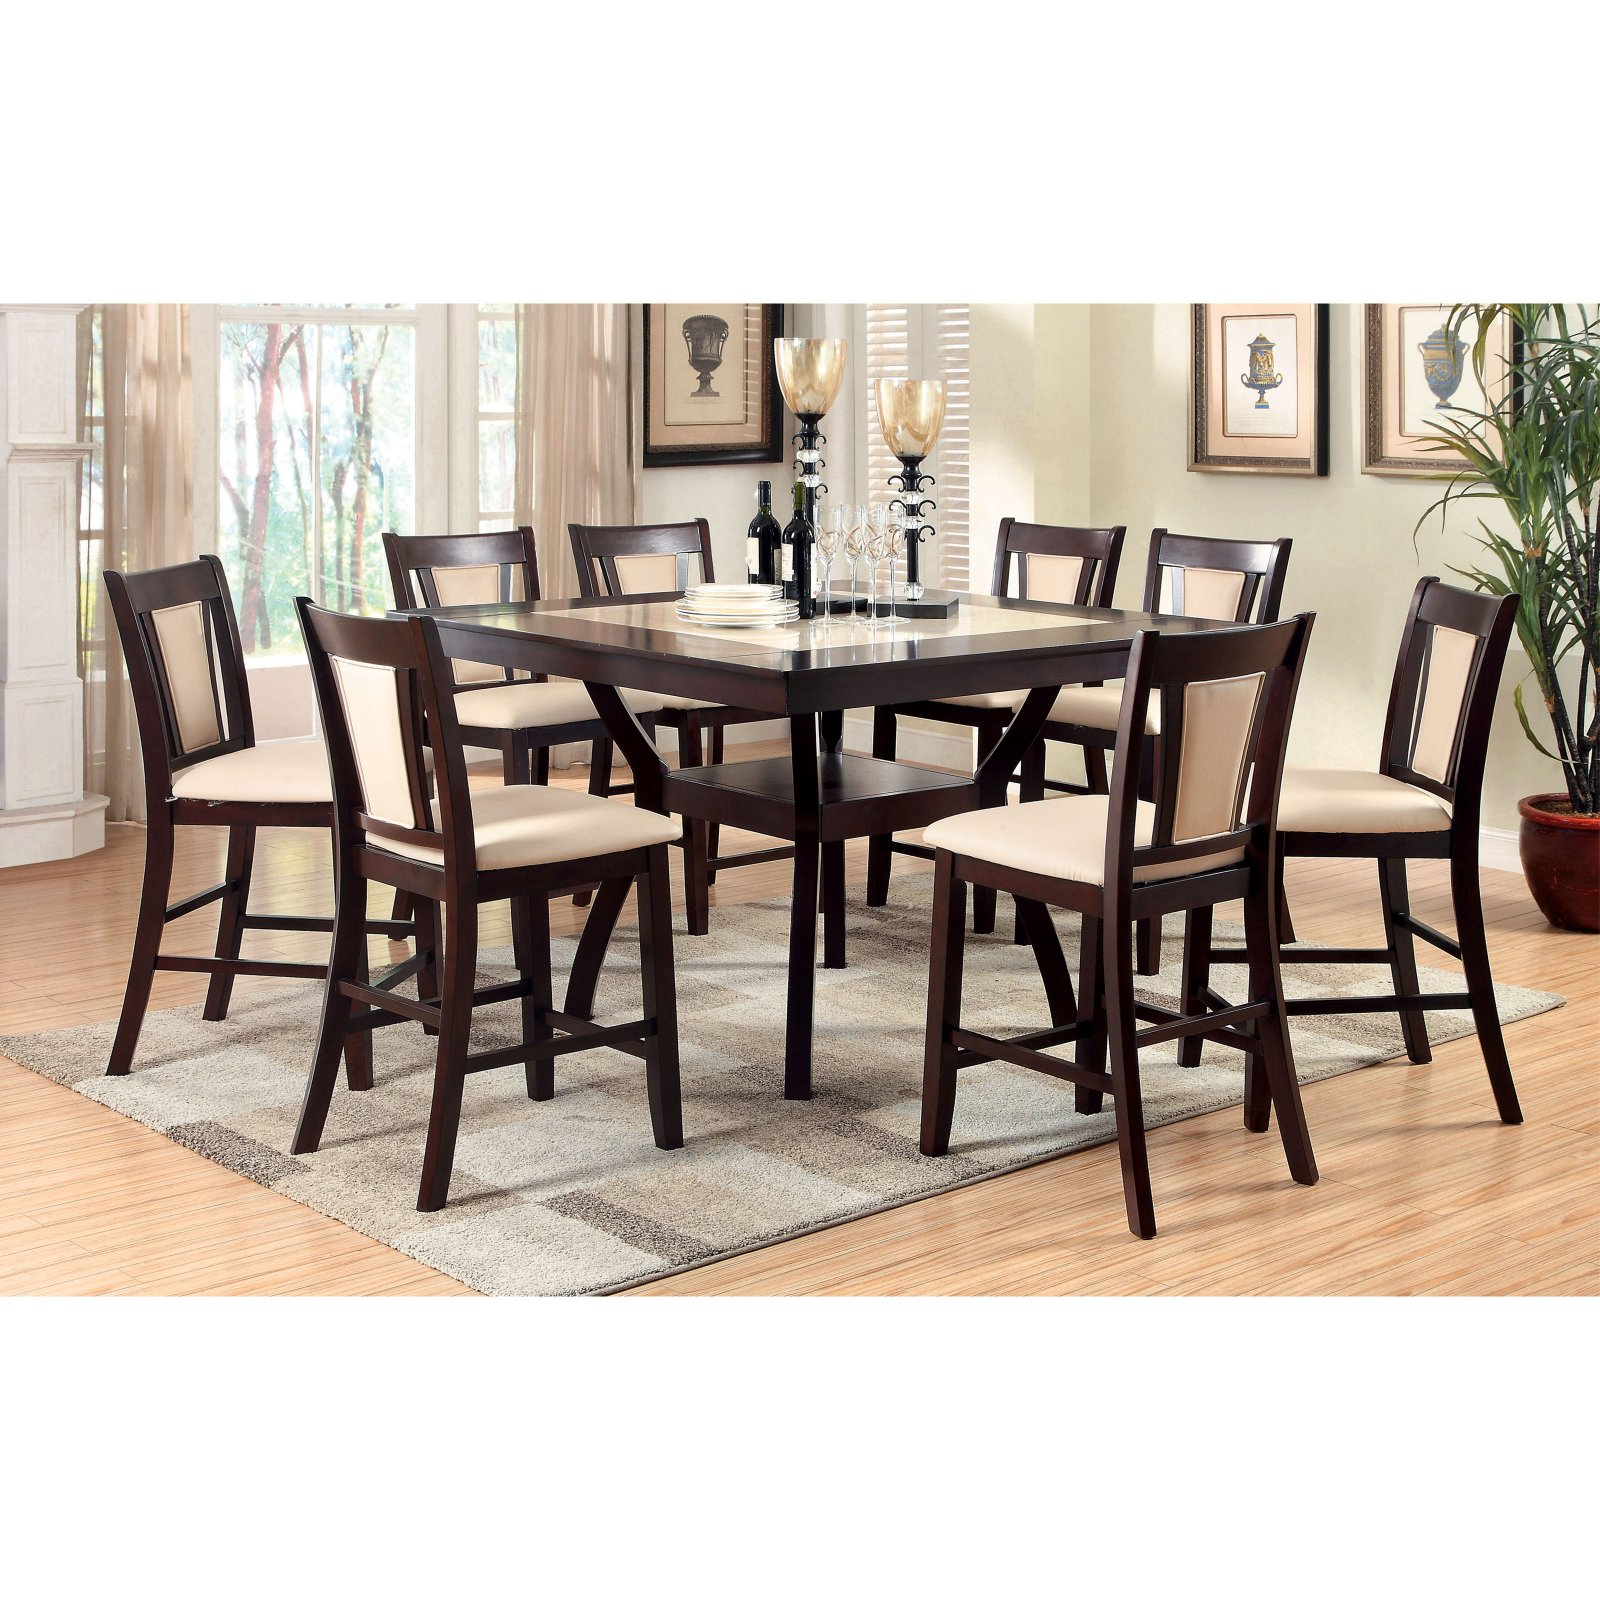 Furniture of America Mullican Counter Height Display Top Dining Table - Dark Cherry & Ivory